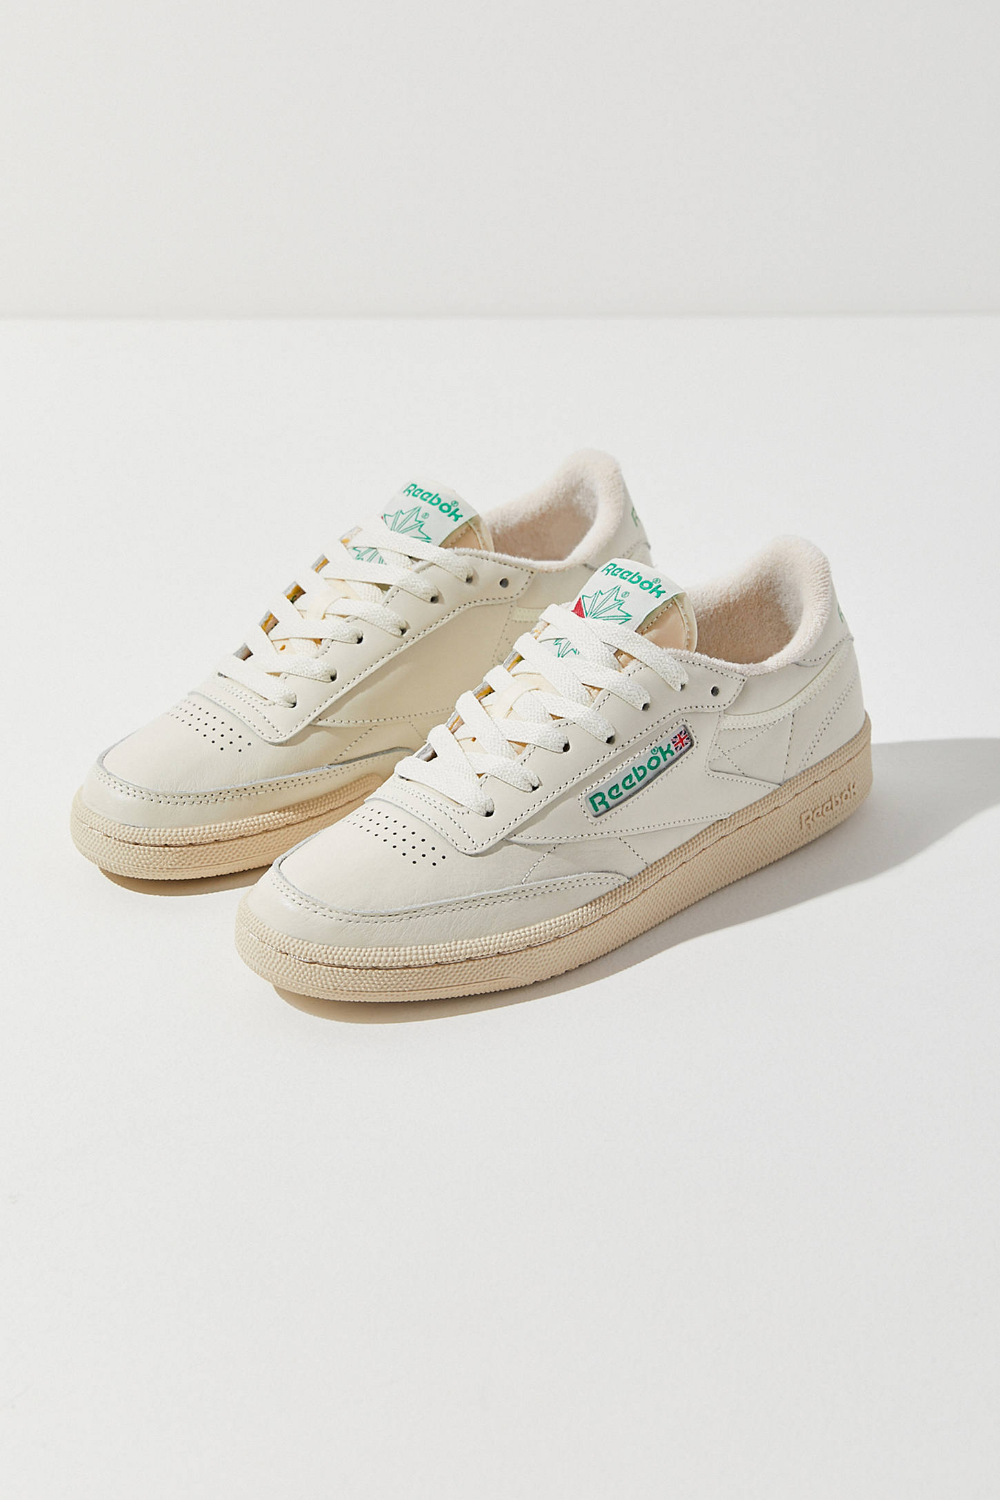 Reebok Classic men's trainers all white leather with Depop